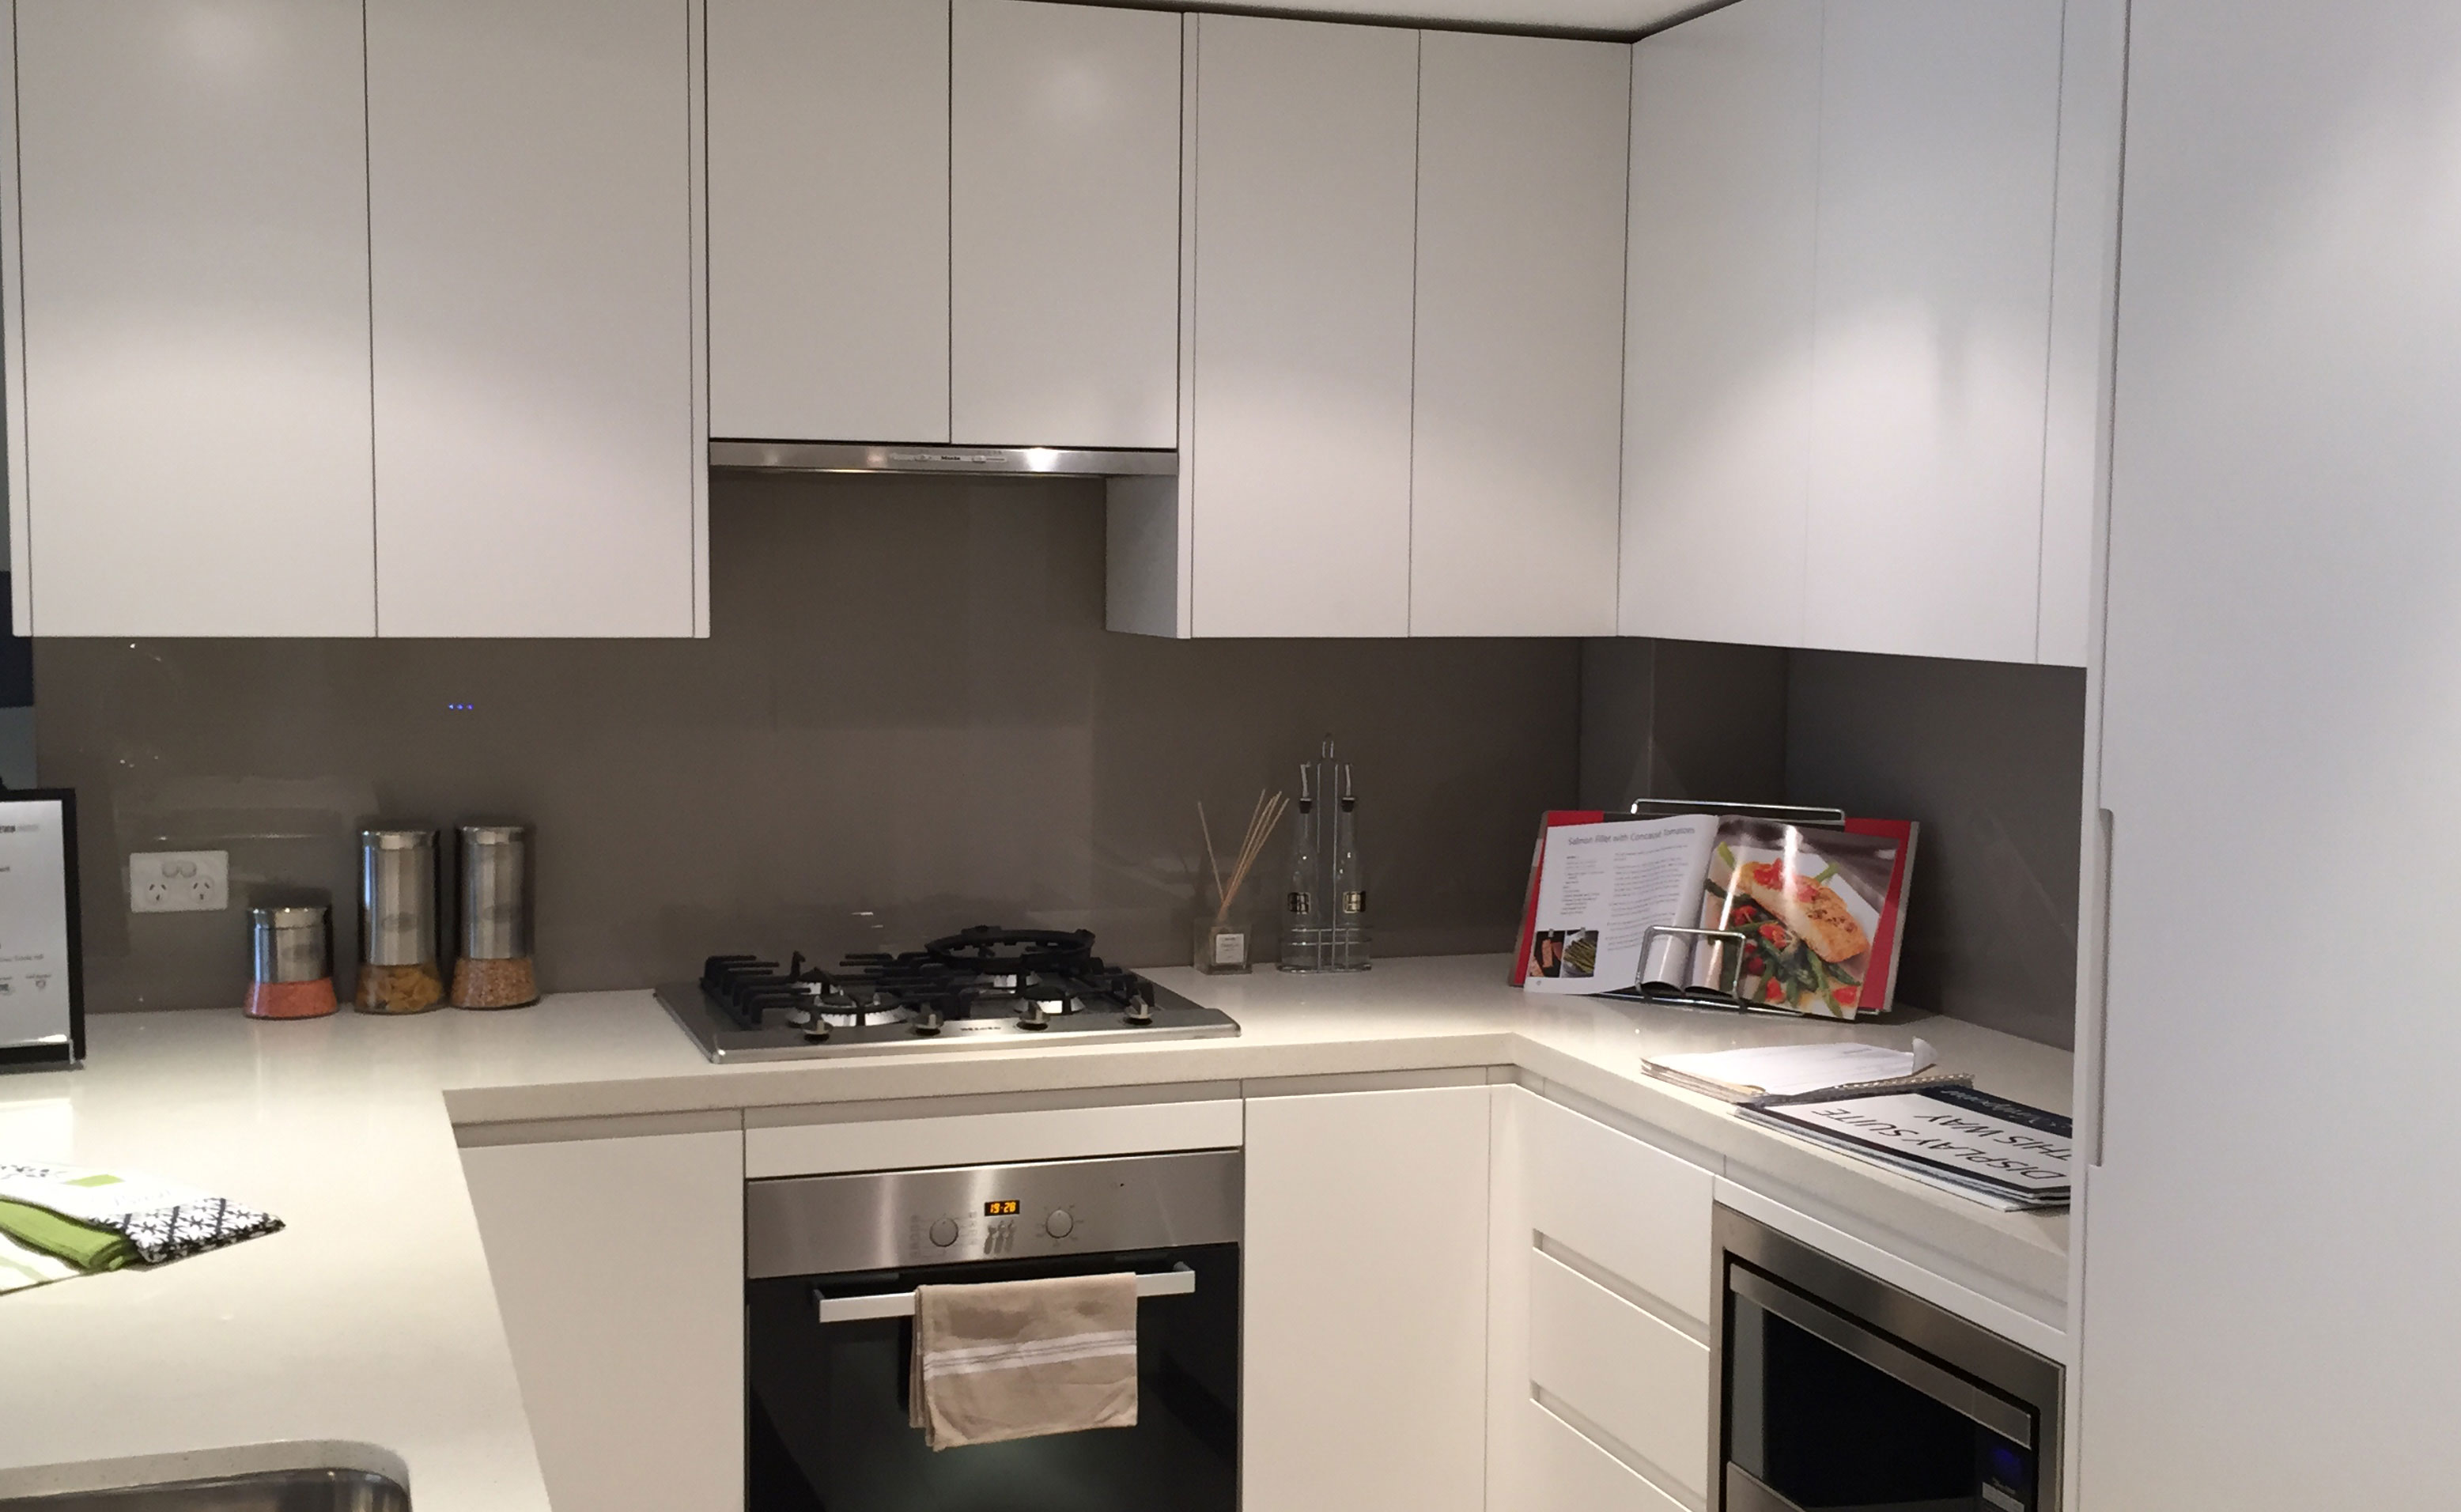 Colour Glass kitchen splash back – Classic B&W